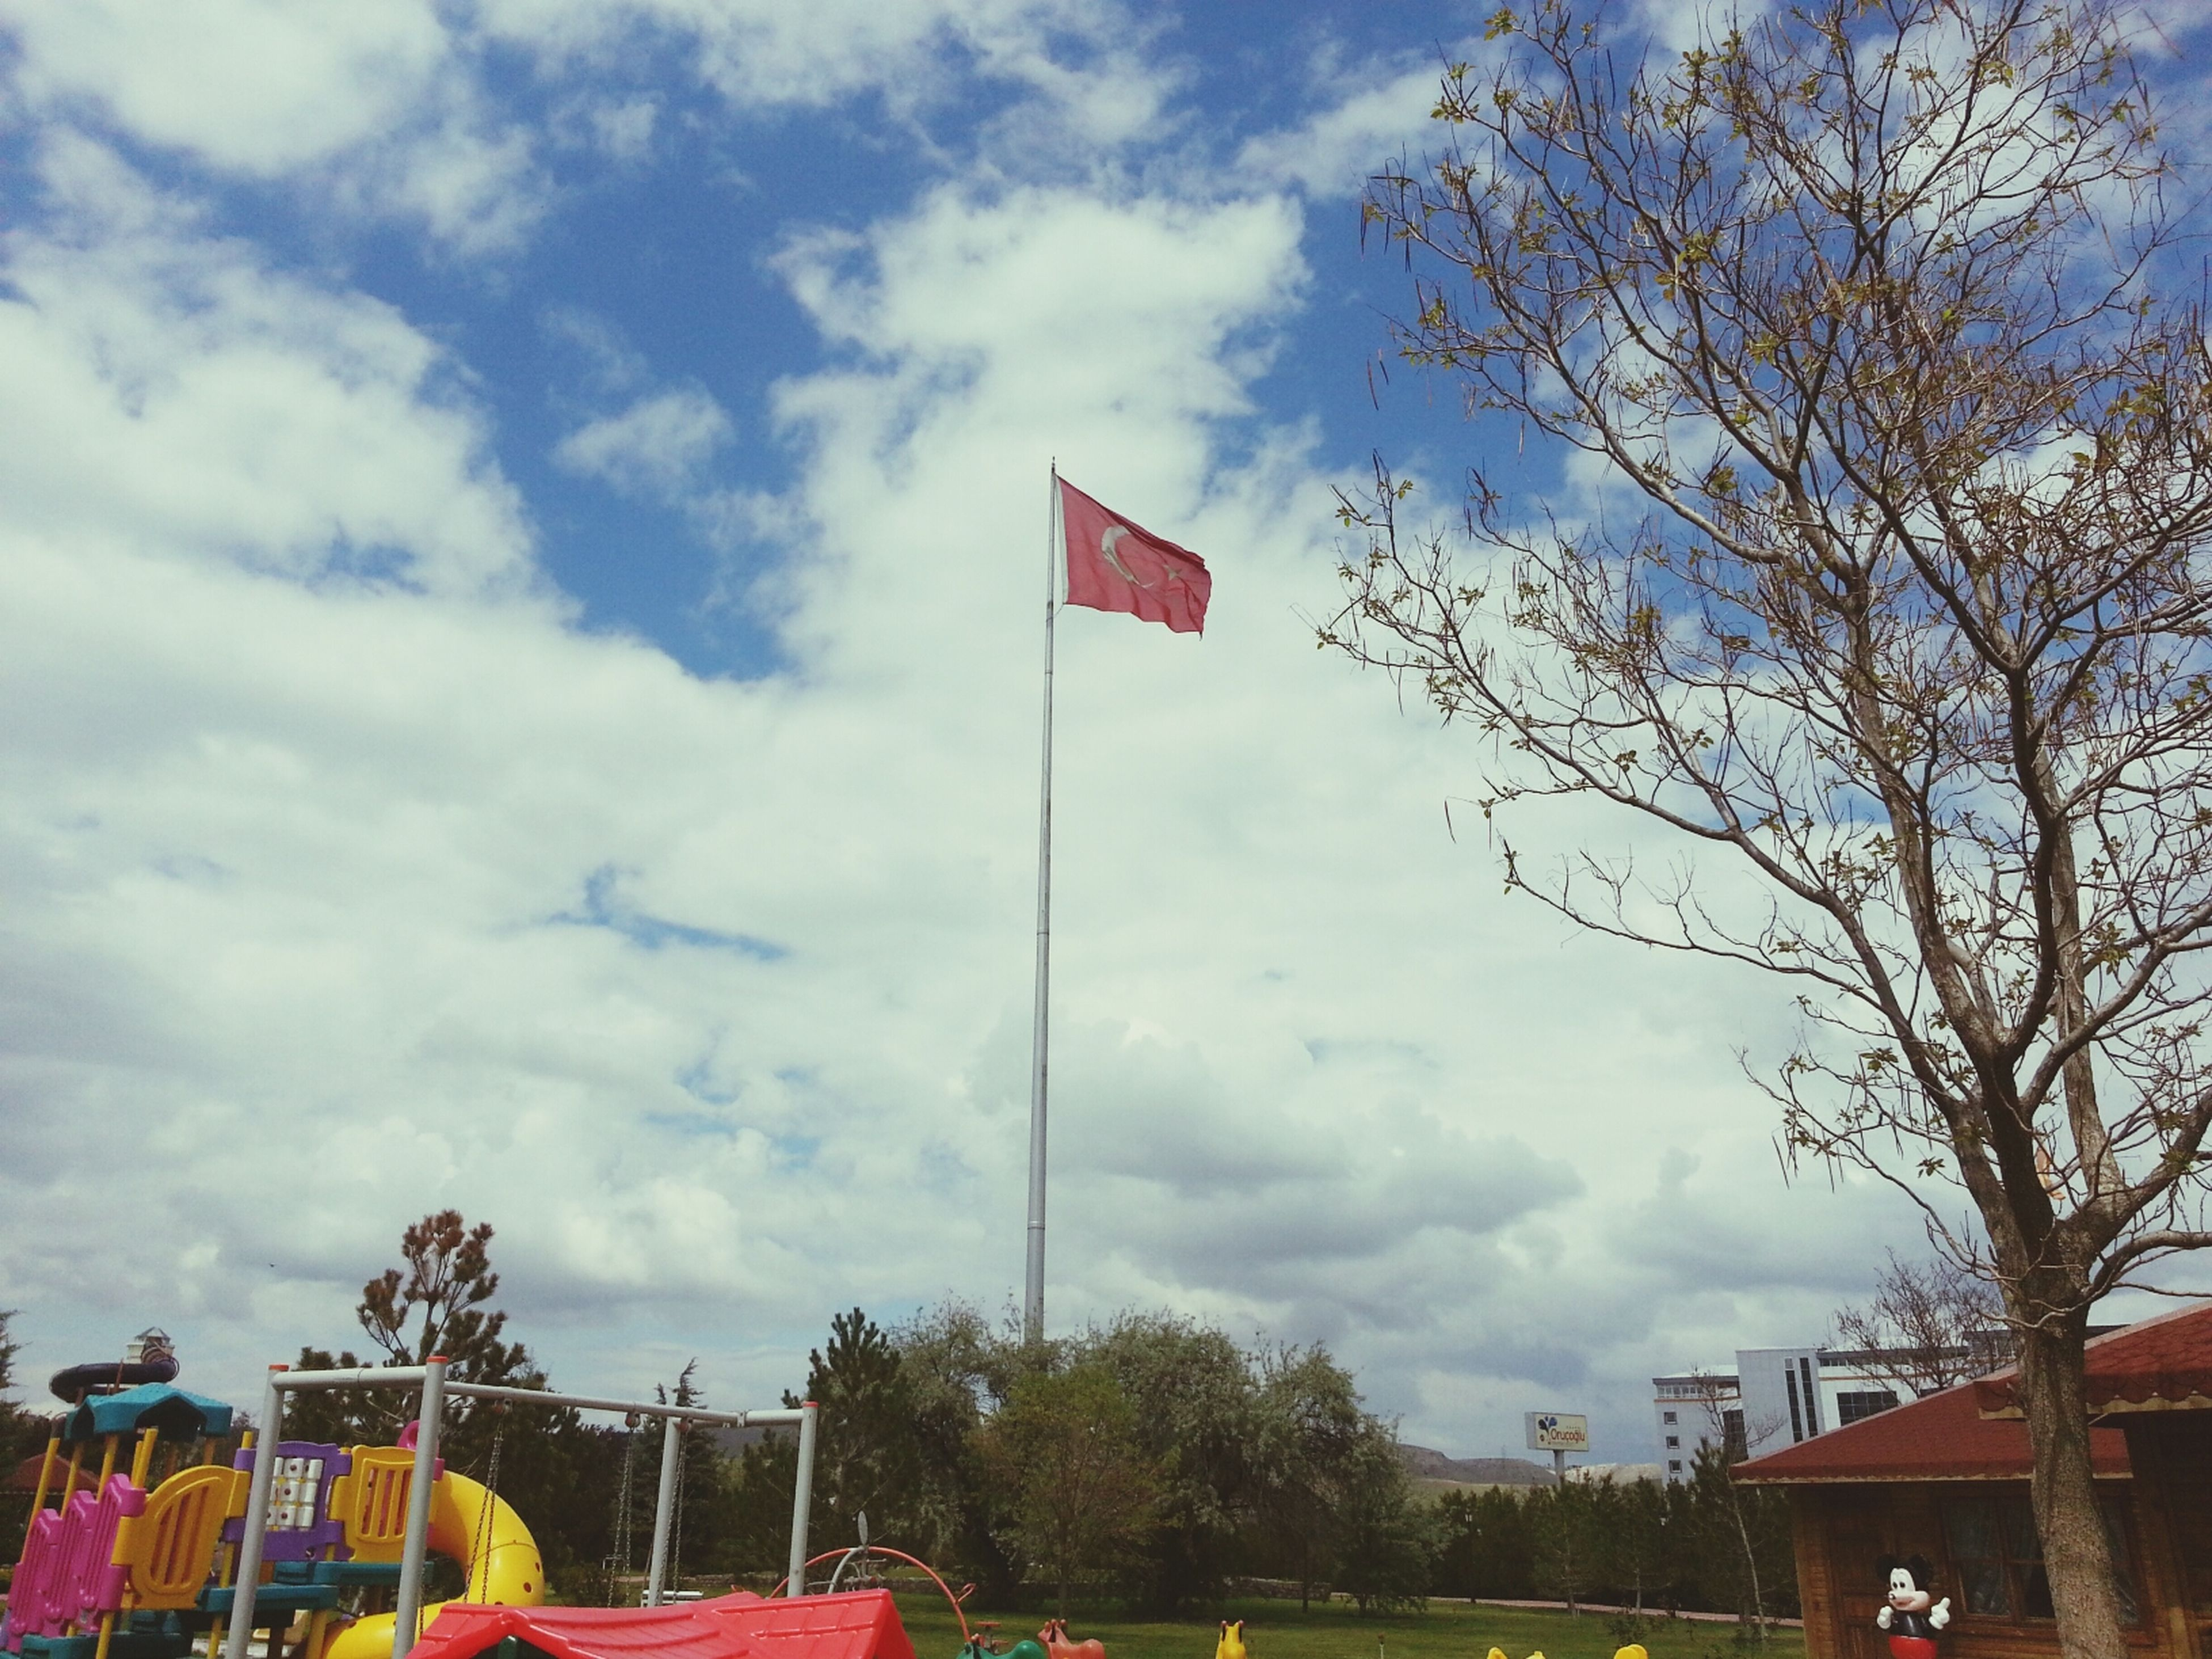 flag, sky, patriotism, national flag, identity, building exterior, cloud - sky, low angle view, architecture, built structure, american flag, tree, cloud, cloudy, red, day, city, road sign, bare tree, outdoors